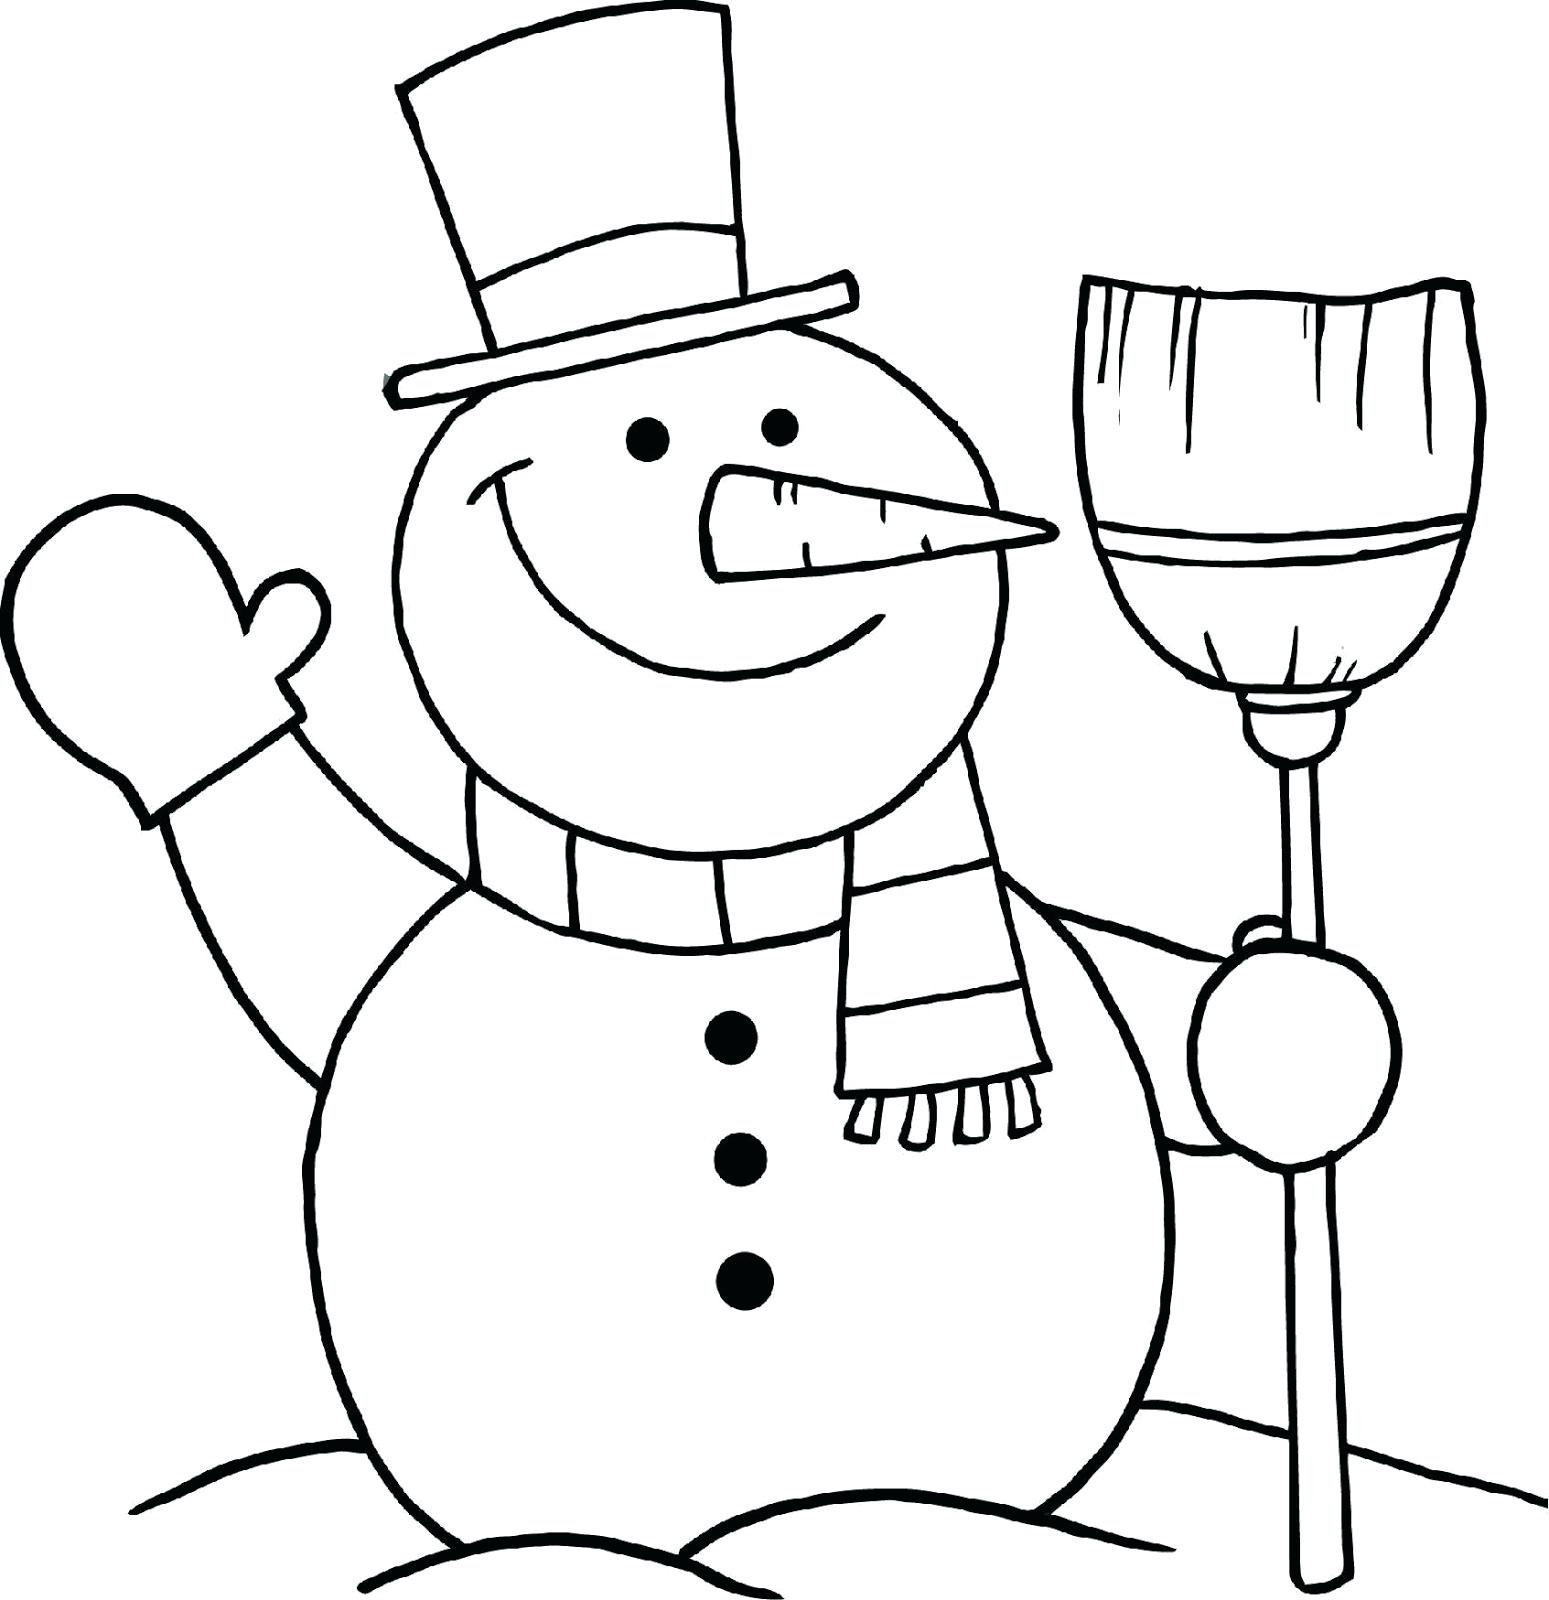 1549x1600 Coloring Pages To Print Archives In The Snowman Frosty Printable